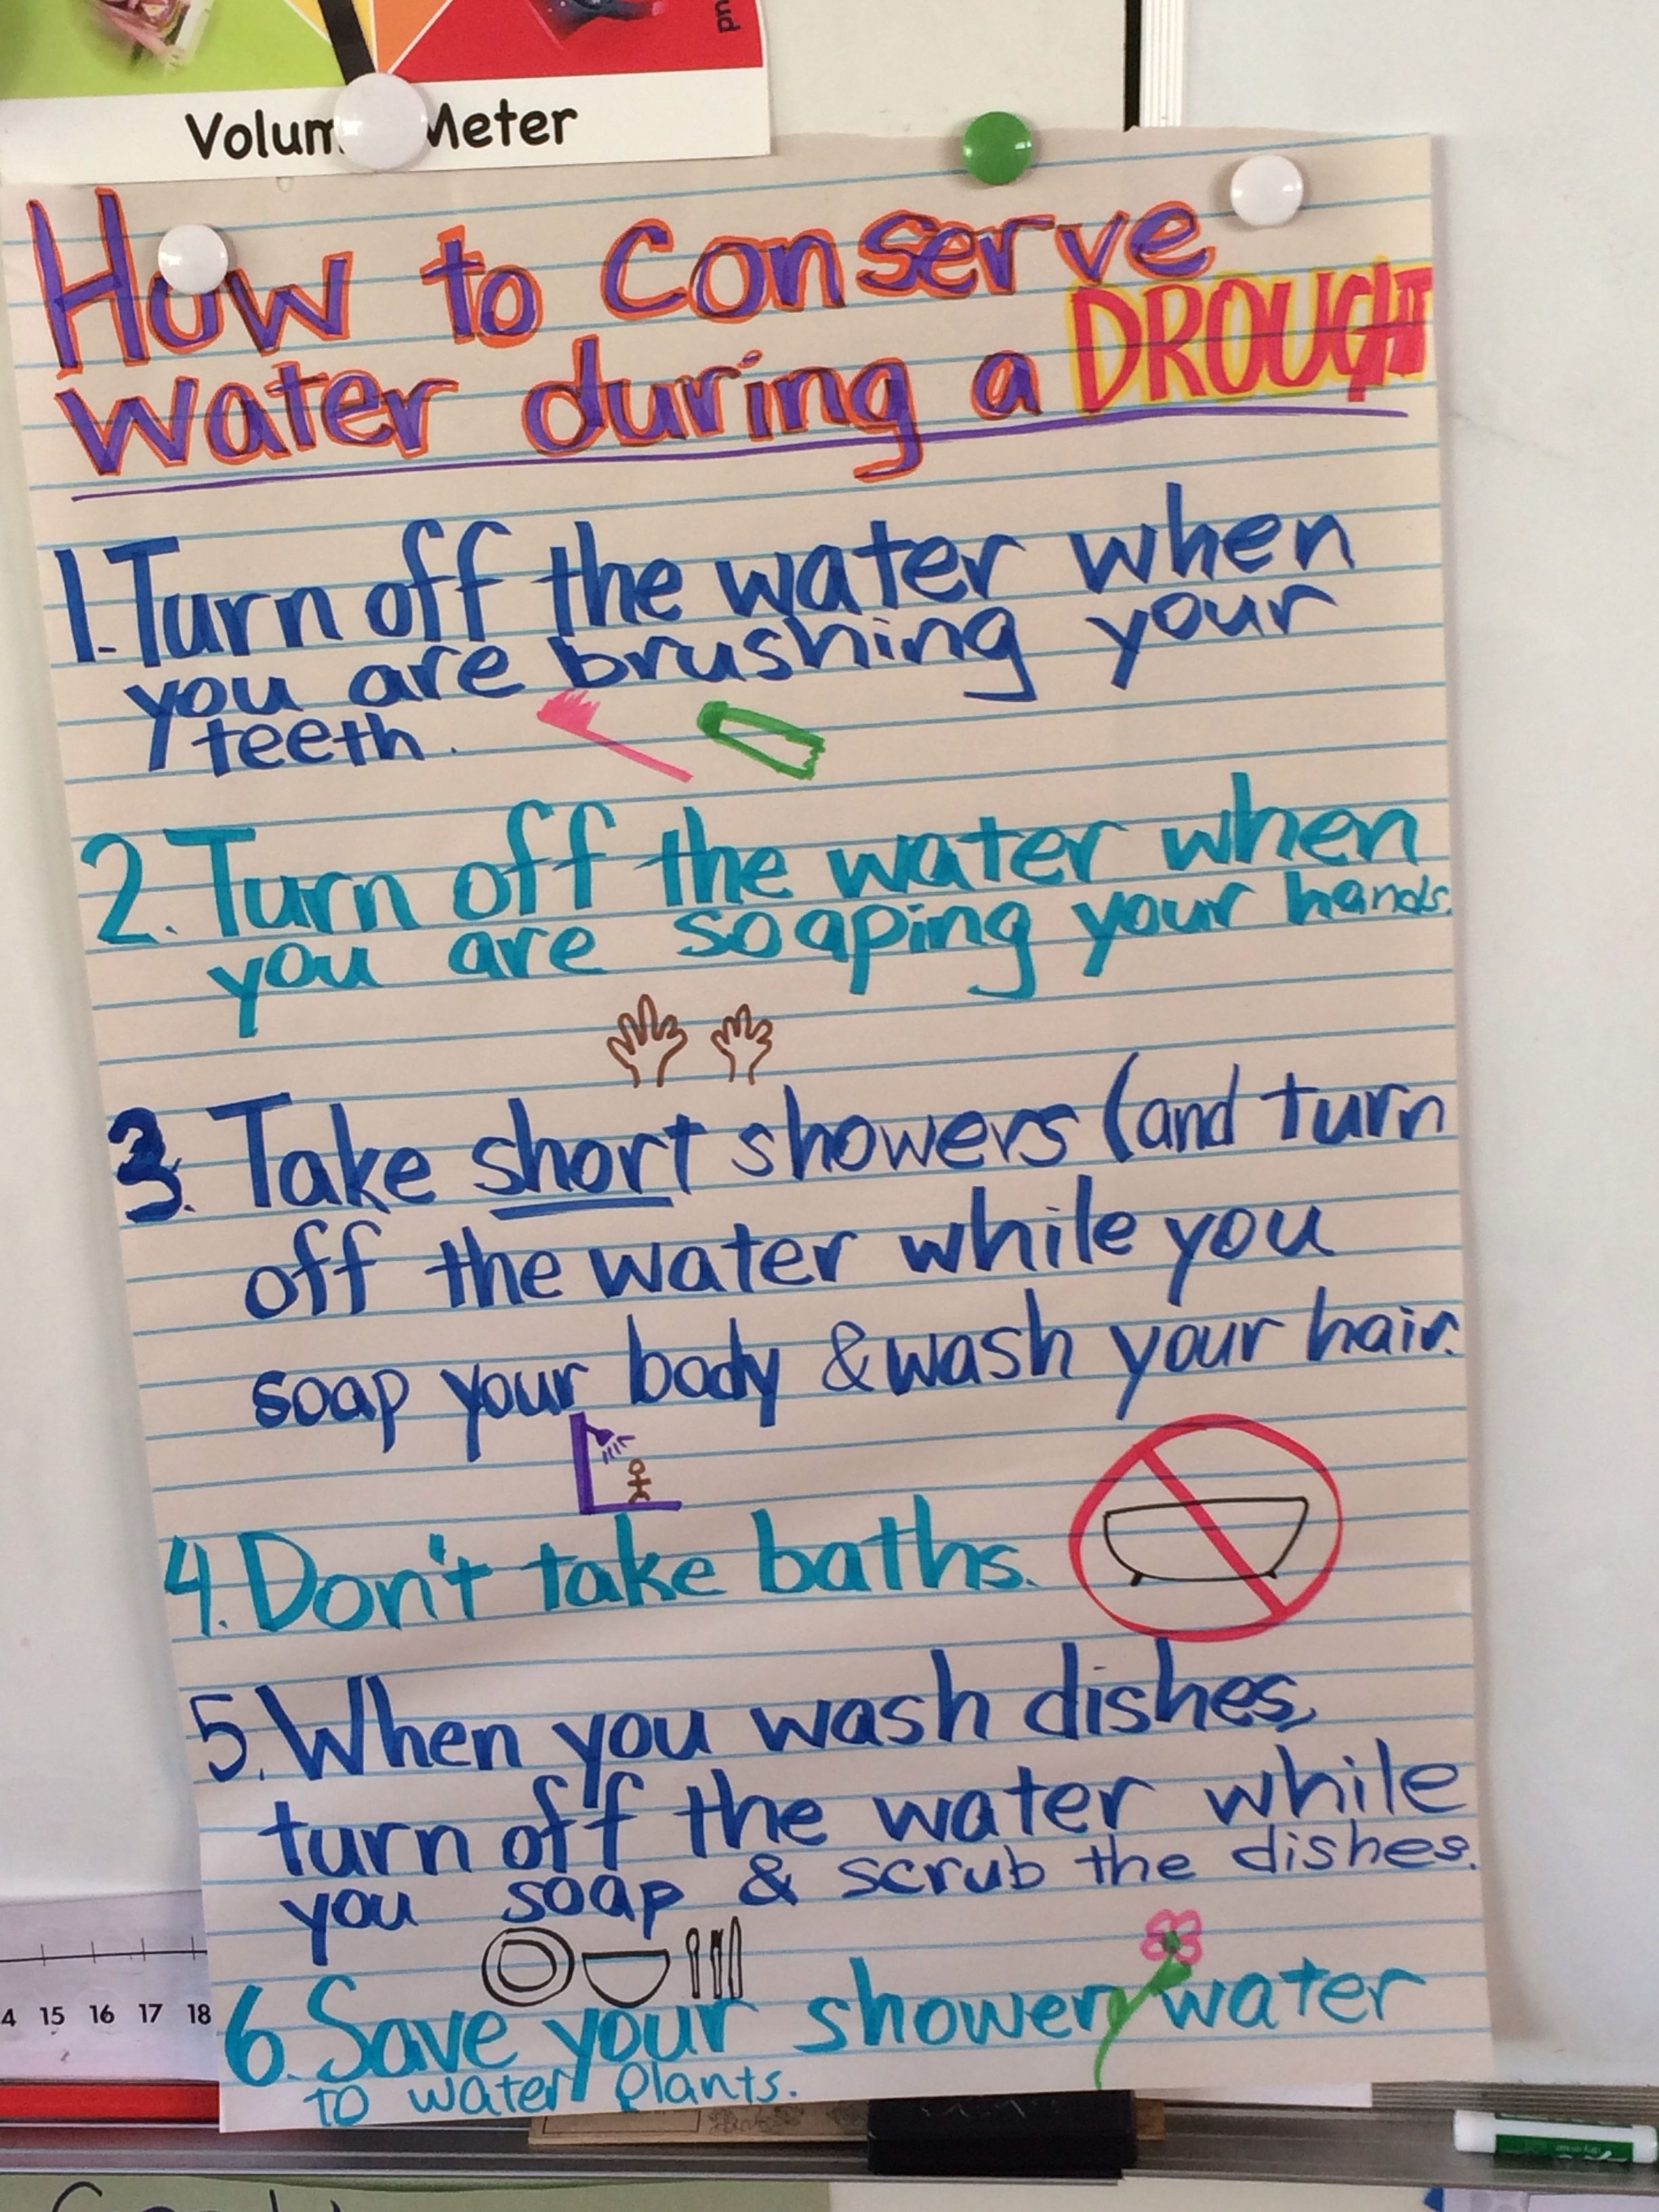 How to conserve water during  drought anchor chart kids can make and illustrate their own poster display at home also rh pinterest